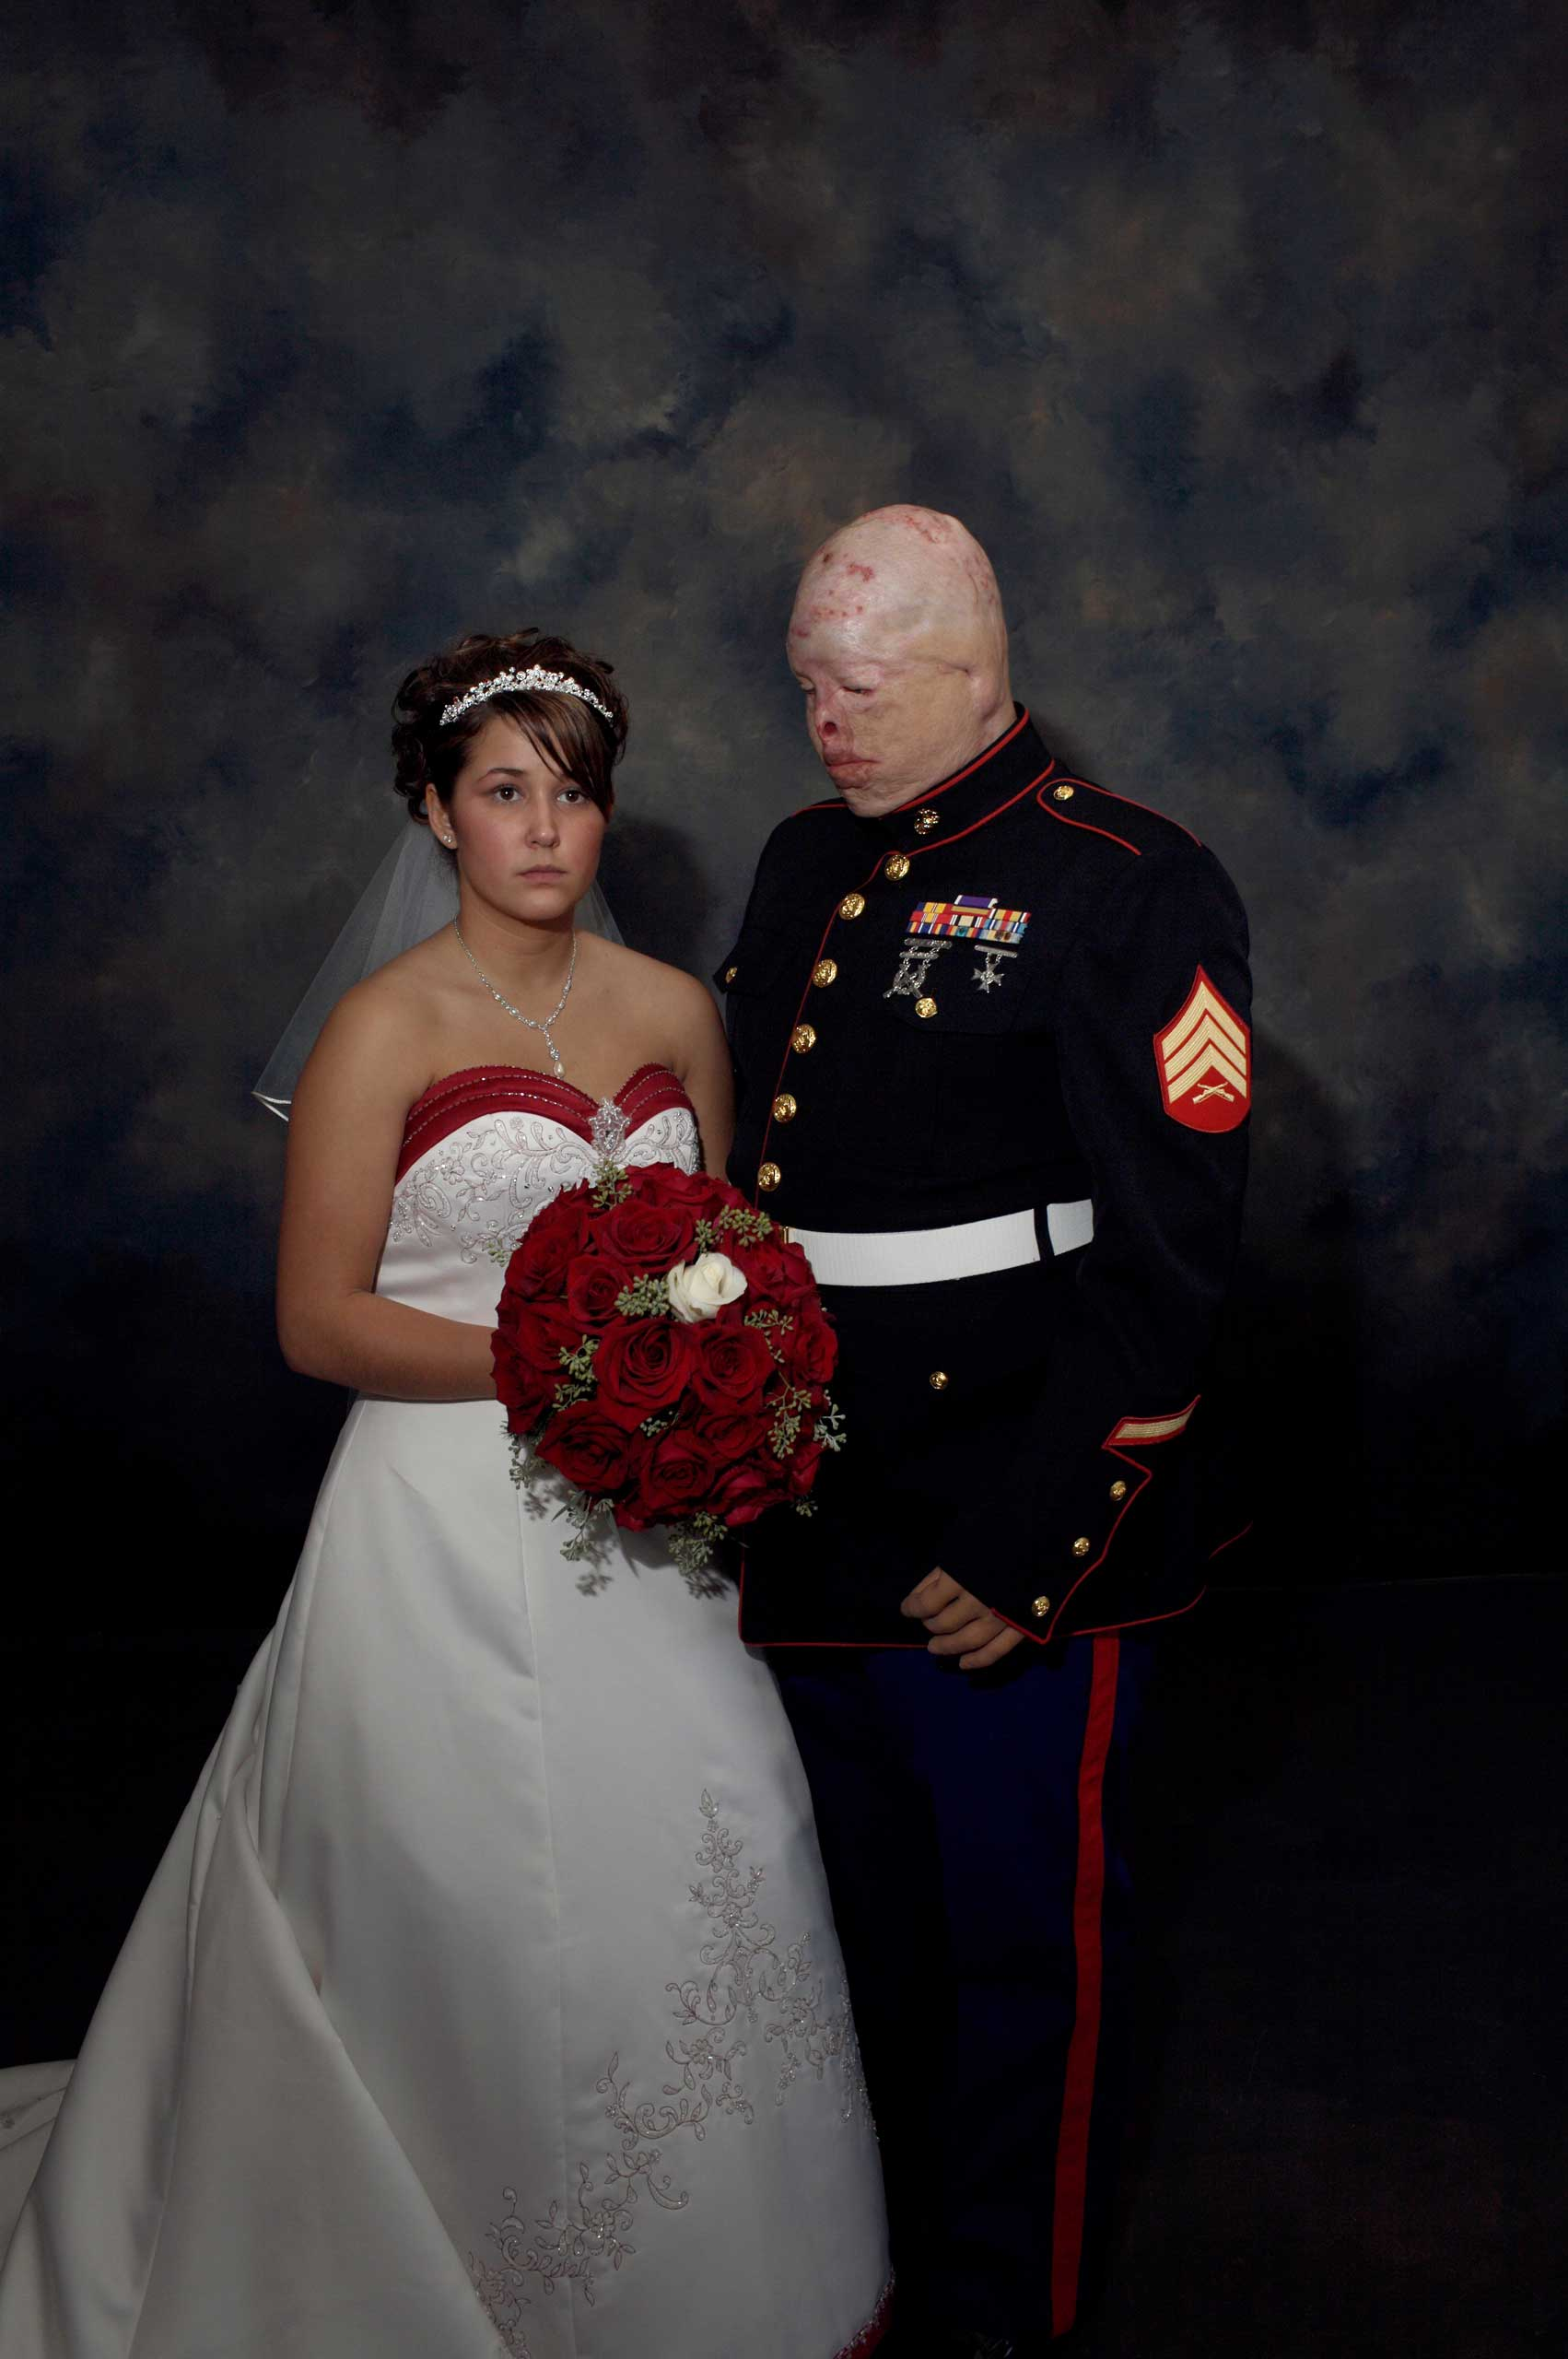 <b>Nina Berman, Oct. 7, 2006                                   </b>                                   Tyler Ziegel and Renee Kline were young sweethearts when Ziegel deployed to Iraq as a reservist in the Marine Corps. On his second tour, he was severely wounded in a suicide car blast. He spent 18 months in surgery and recovery at Brooke Army Medical Center. The love of his family and his fiancée, Ms. Kline, helped him to survive.                                    I had been photographing the couple over several months. On October 7, 2006, the morning of their wedding, I made this image. Through my eyes at that moment, I saw a shell-shocked couple and the heavy legacy of war.                                    They divorced several months later. On December 26, 2012, Ziegel, whose health was always precarious because of his war injuries, slipped on ice, hit his head, and died. He was 30 years old.